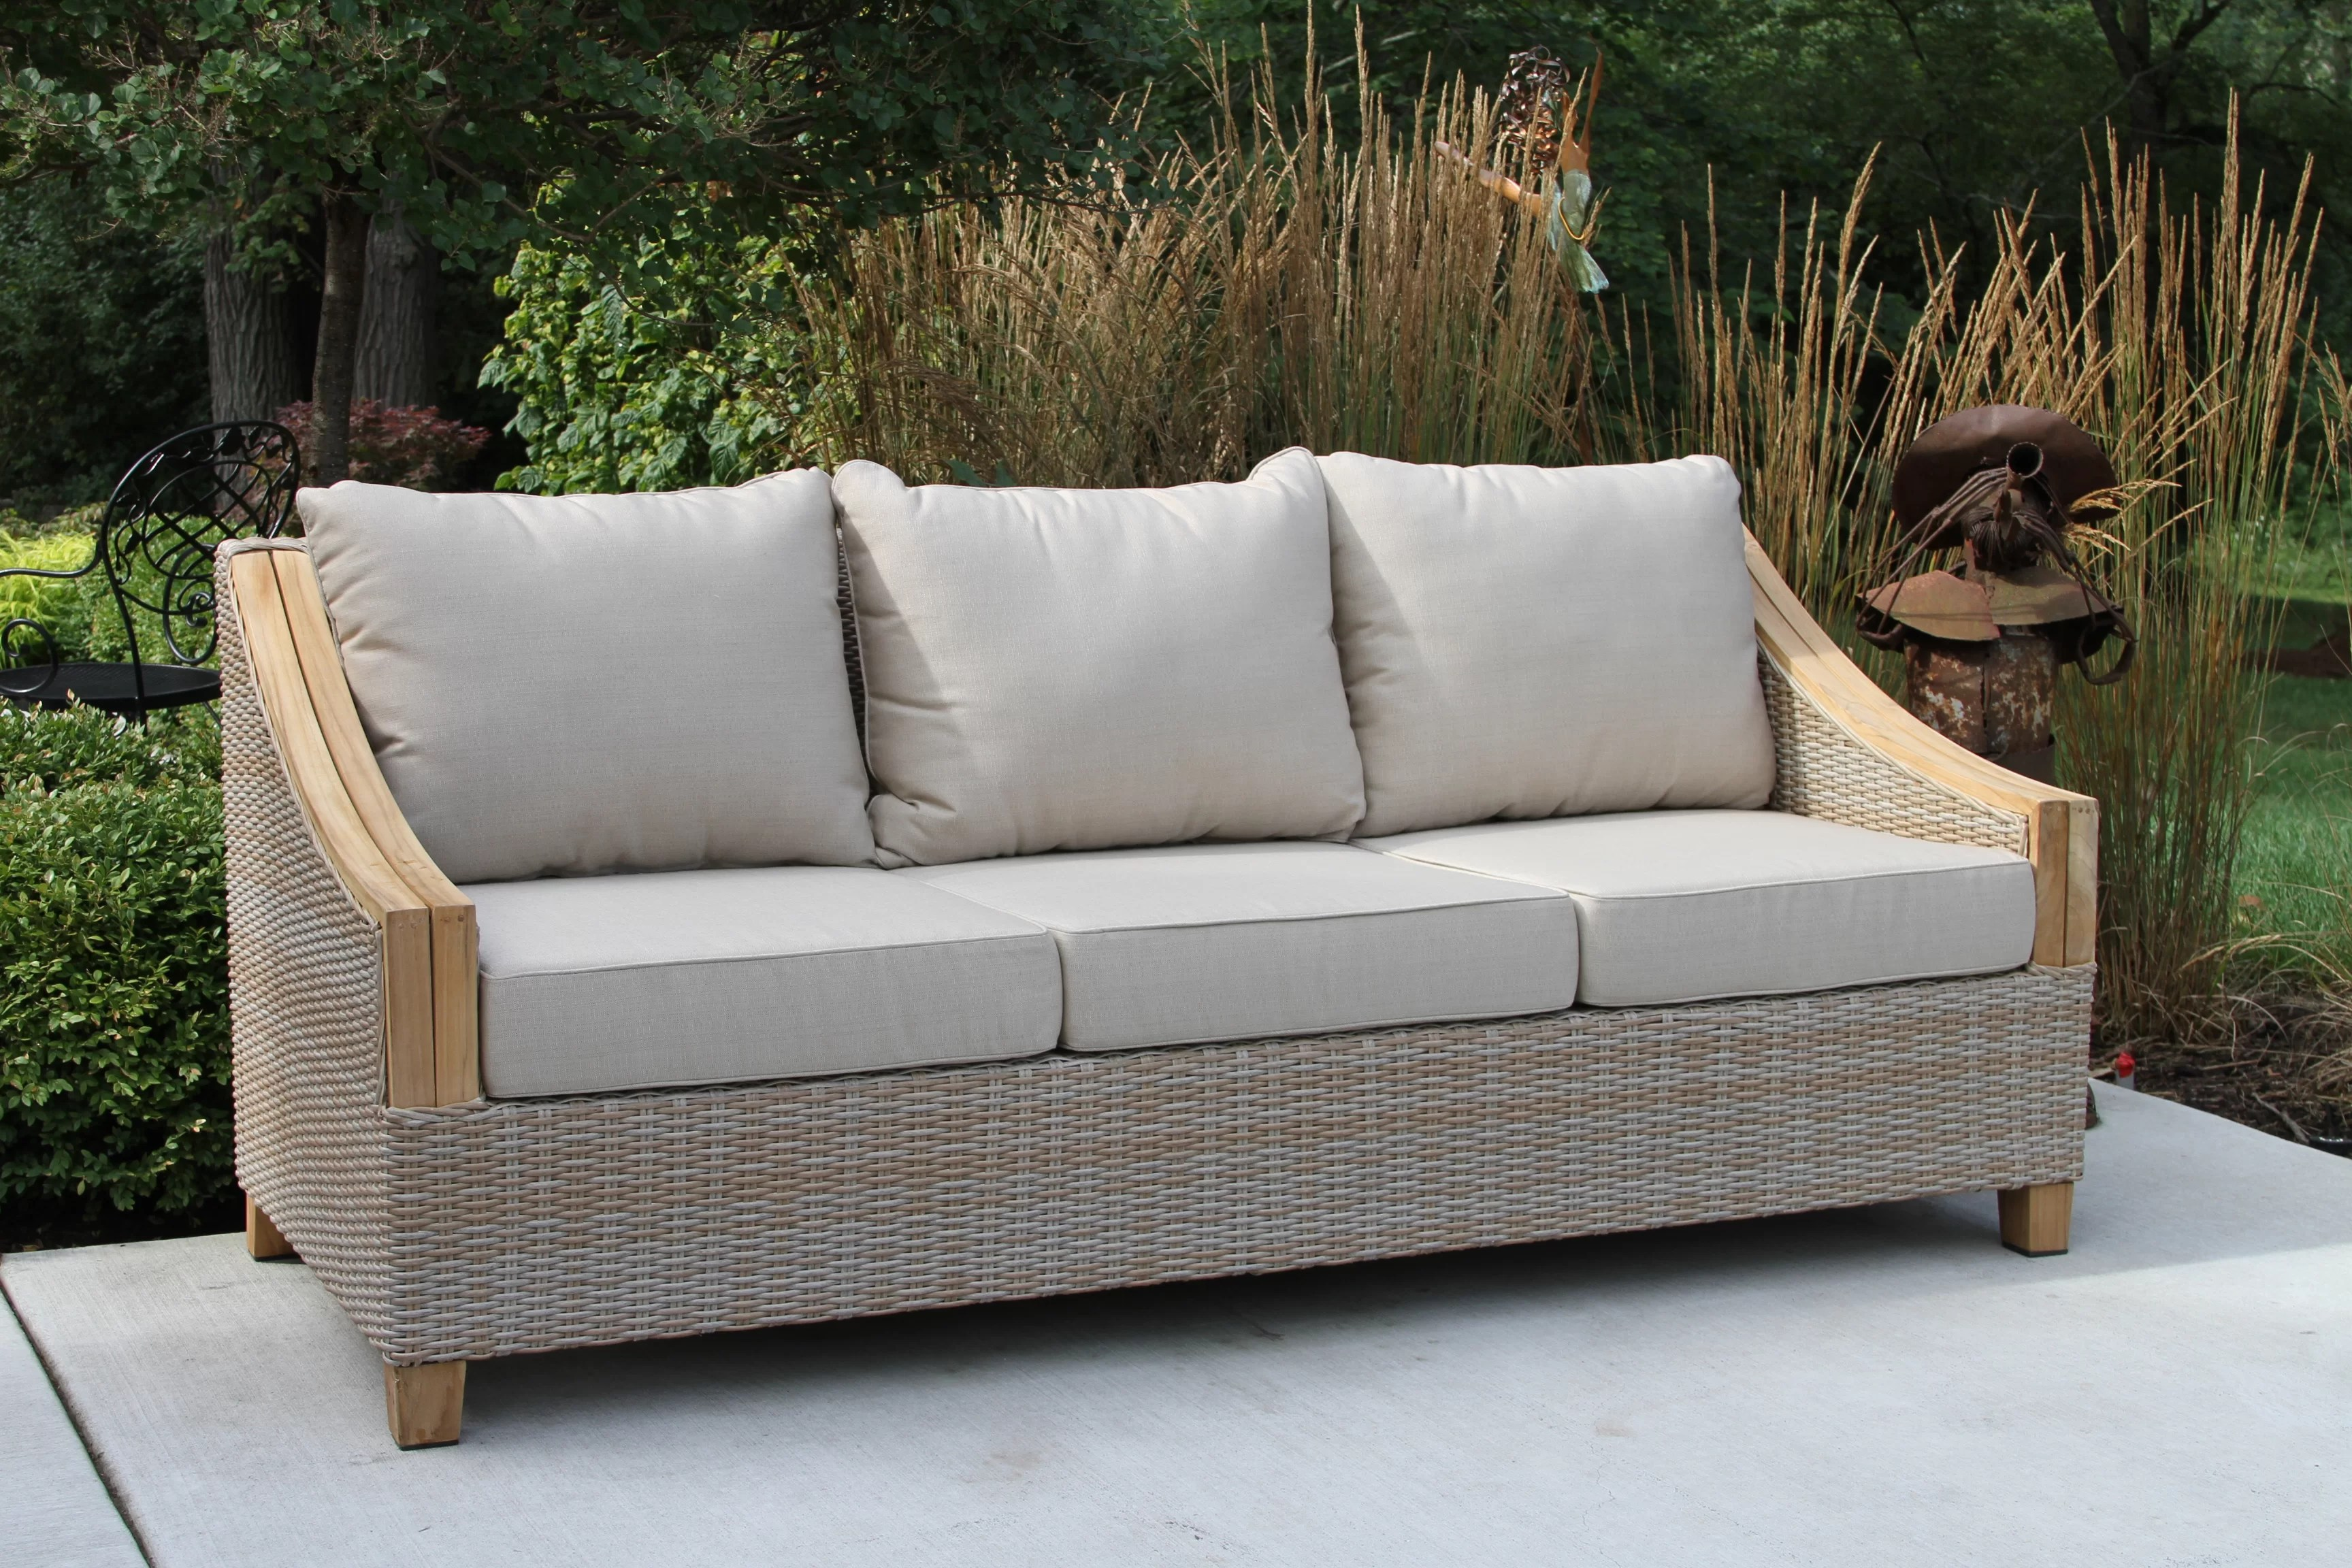 Donalsonville Teak Patio Sofa With Sunbrella Cushions Reviews Birch Lane